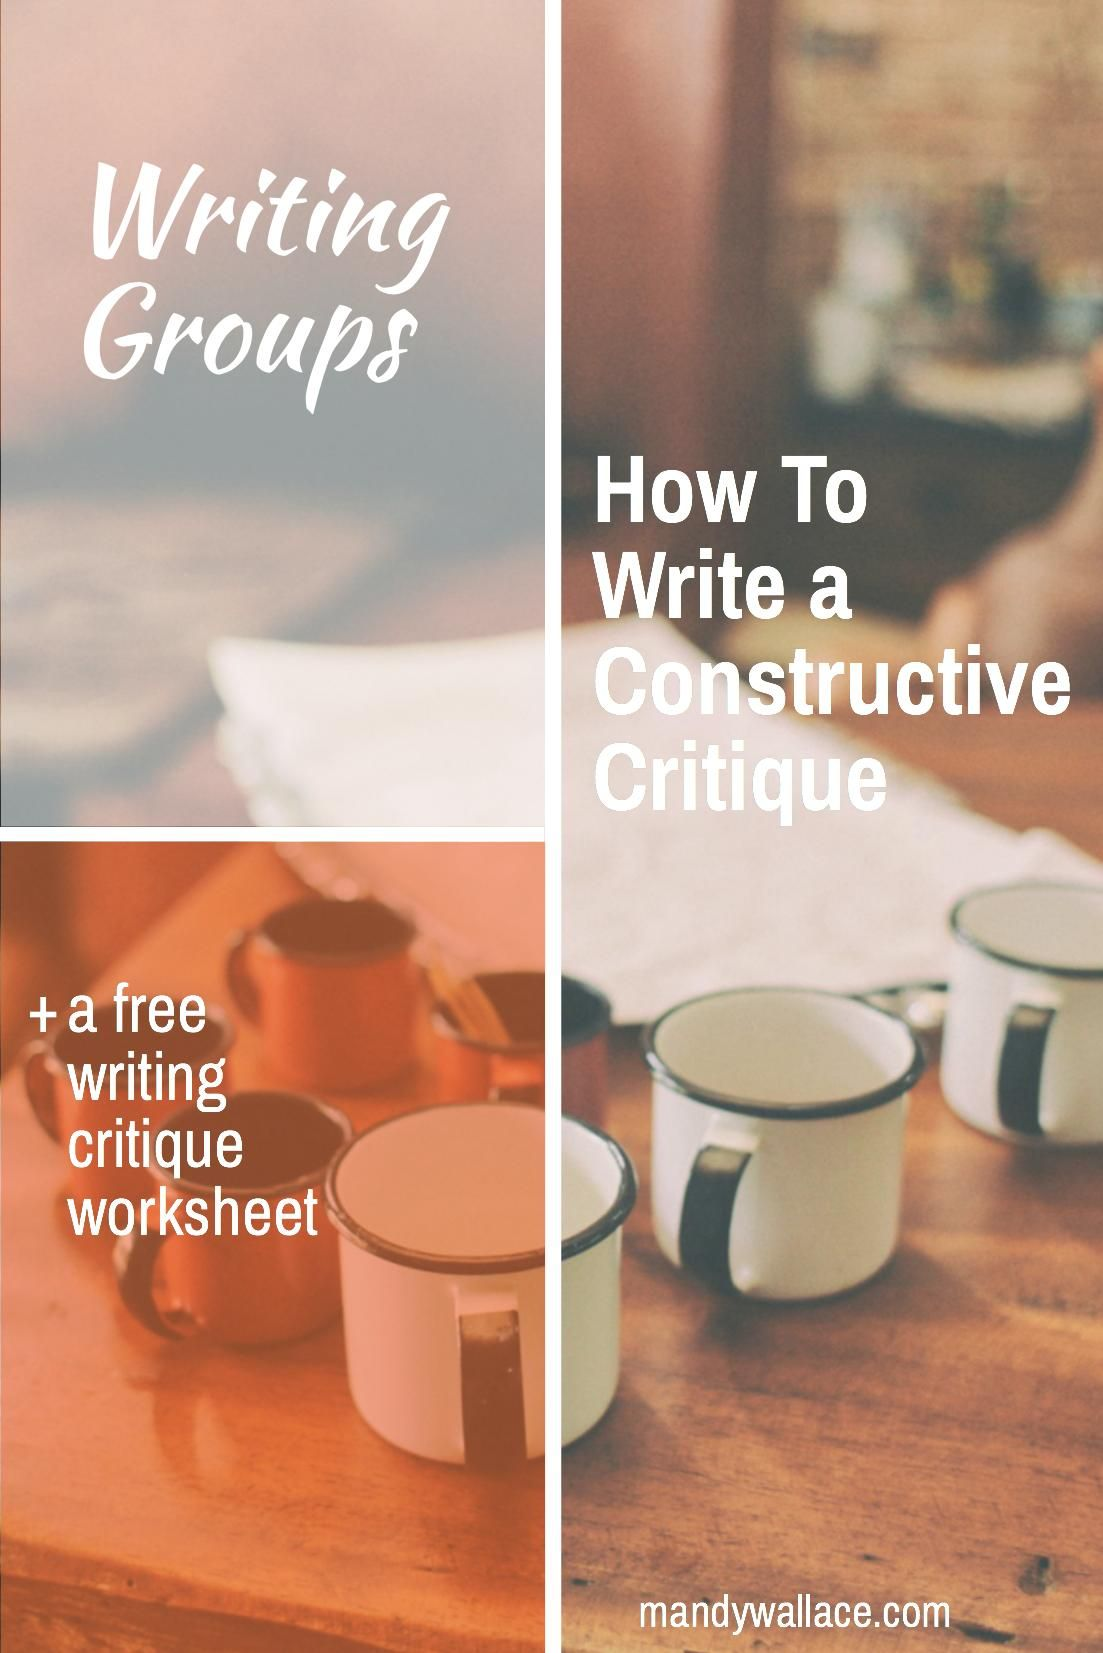 Writing Groups How To Write A Constructive Critique